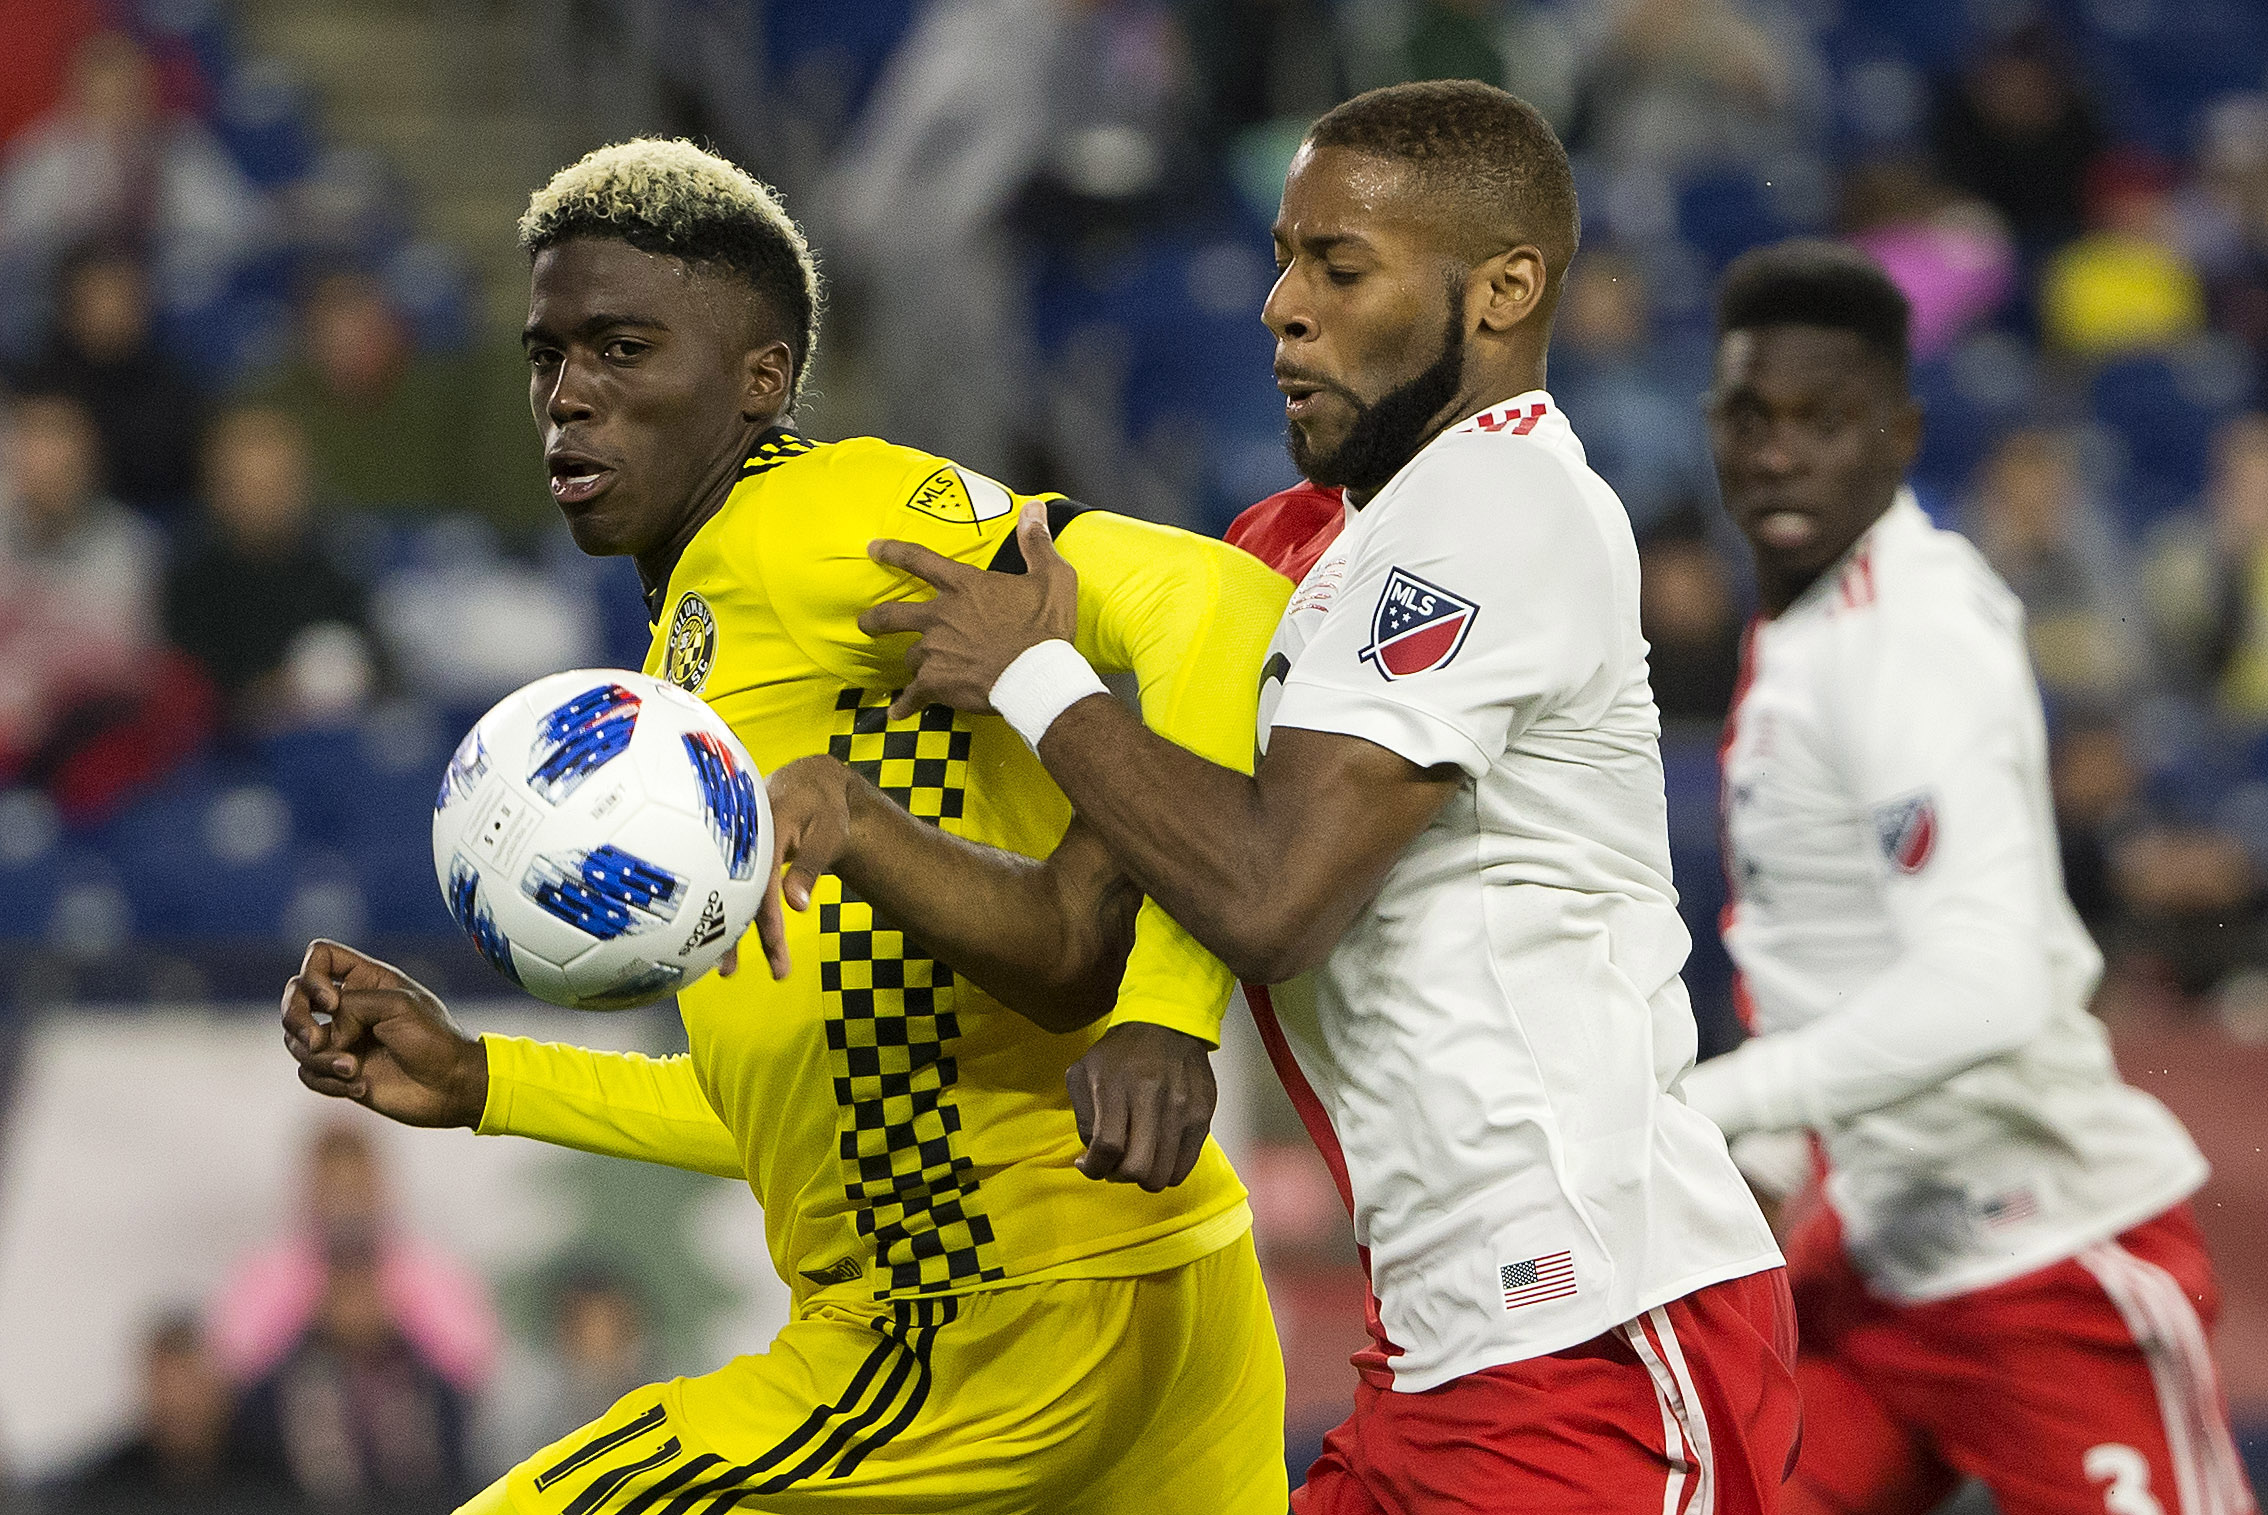 ad2f293d1cb Columbus Crew Preview - Three Questions with Massive Report. Caleb Porter  now ...